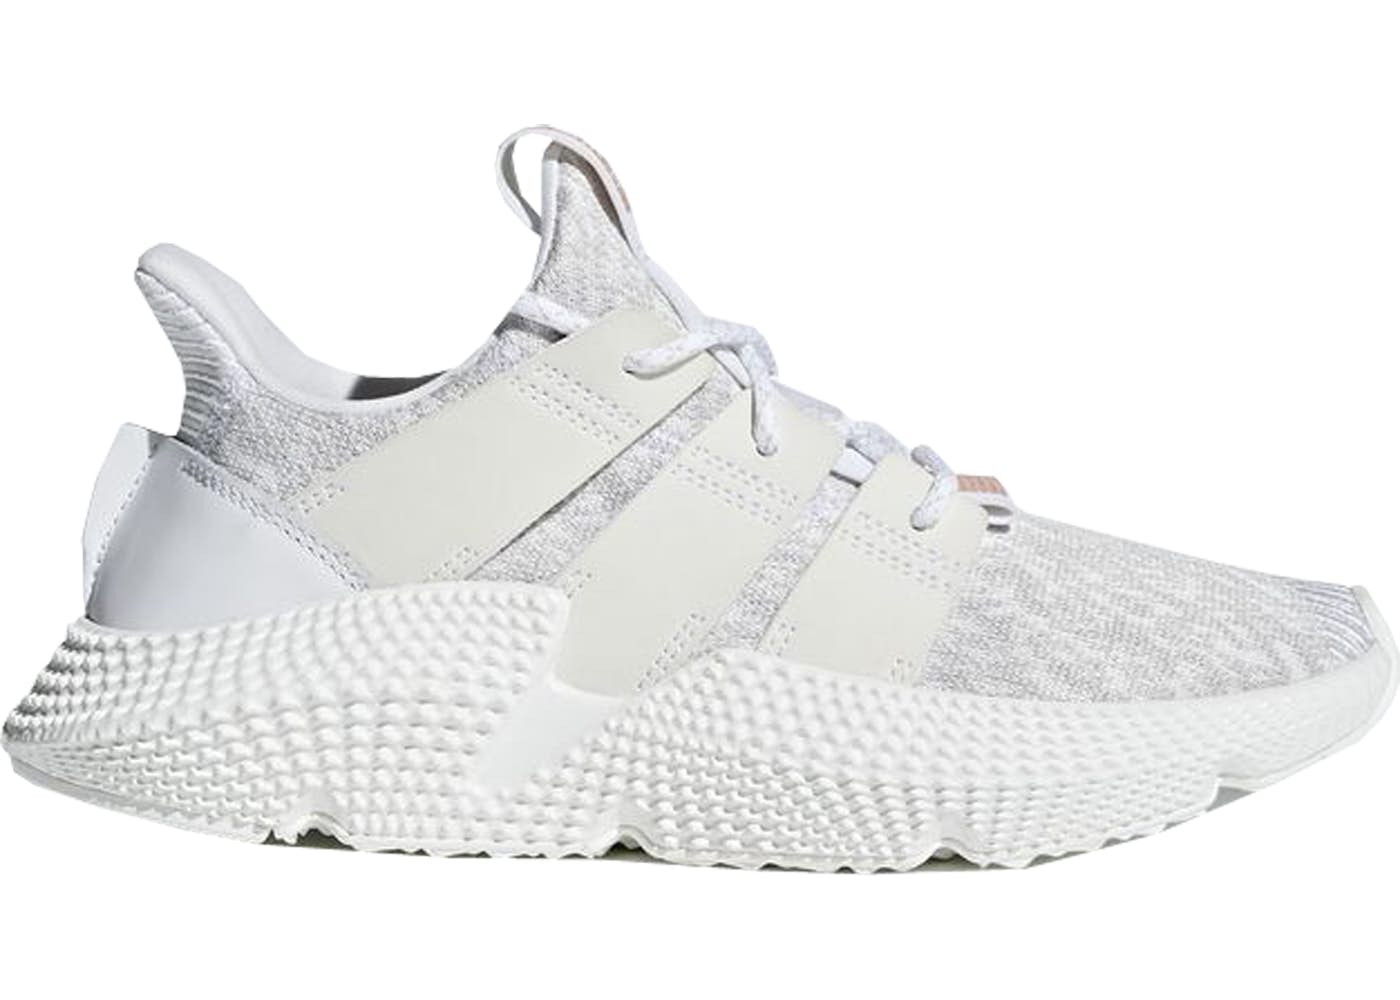 adidas prophere triple white w. Black Bedroom Furniture Sets. Home Design Ideas